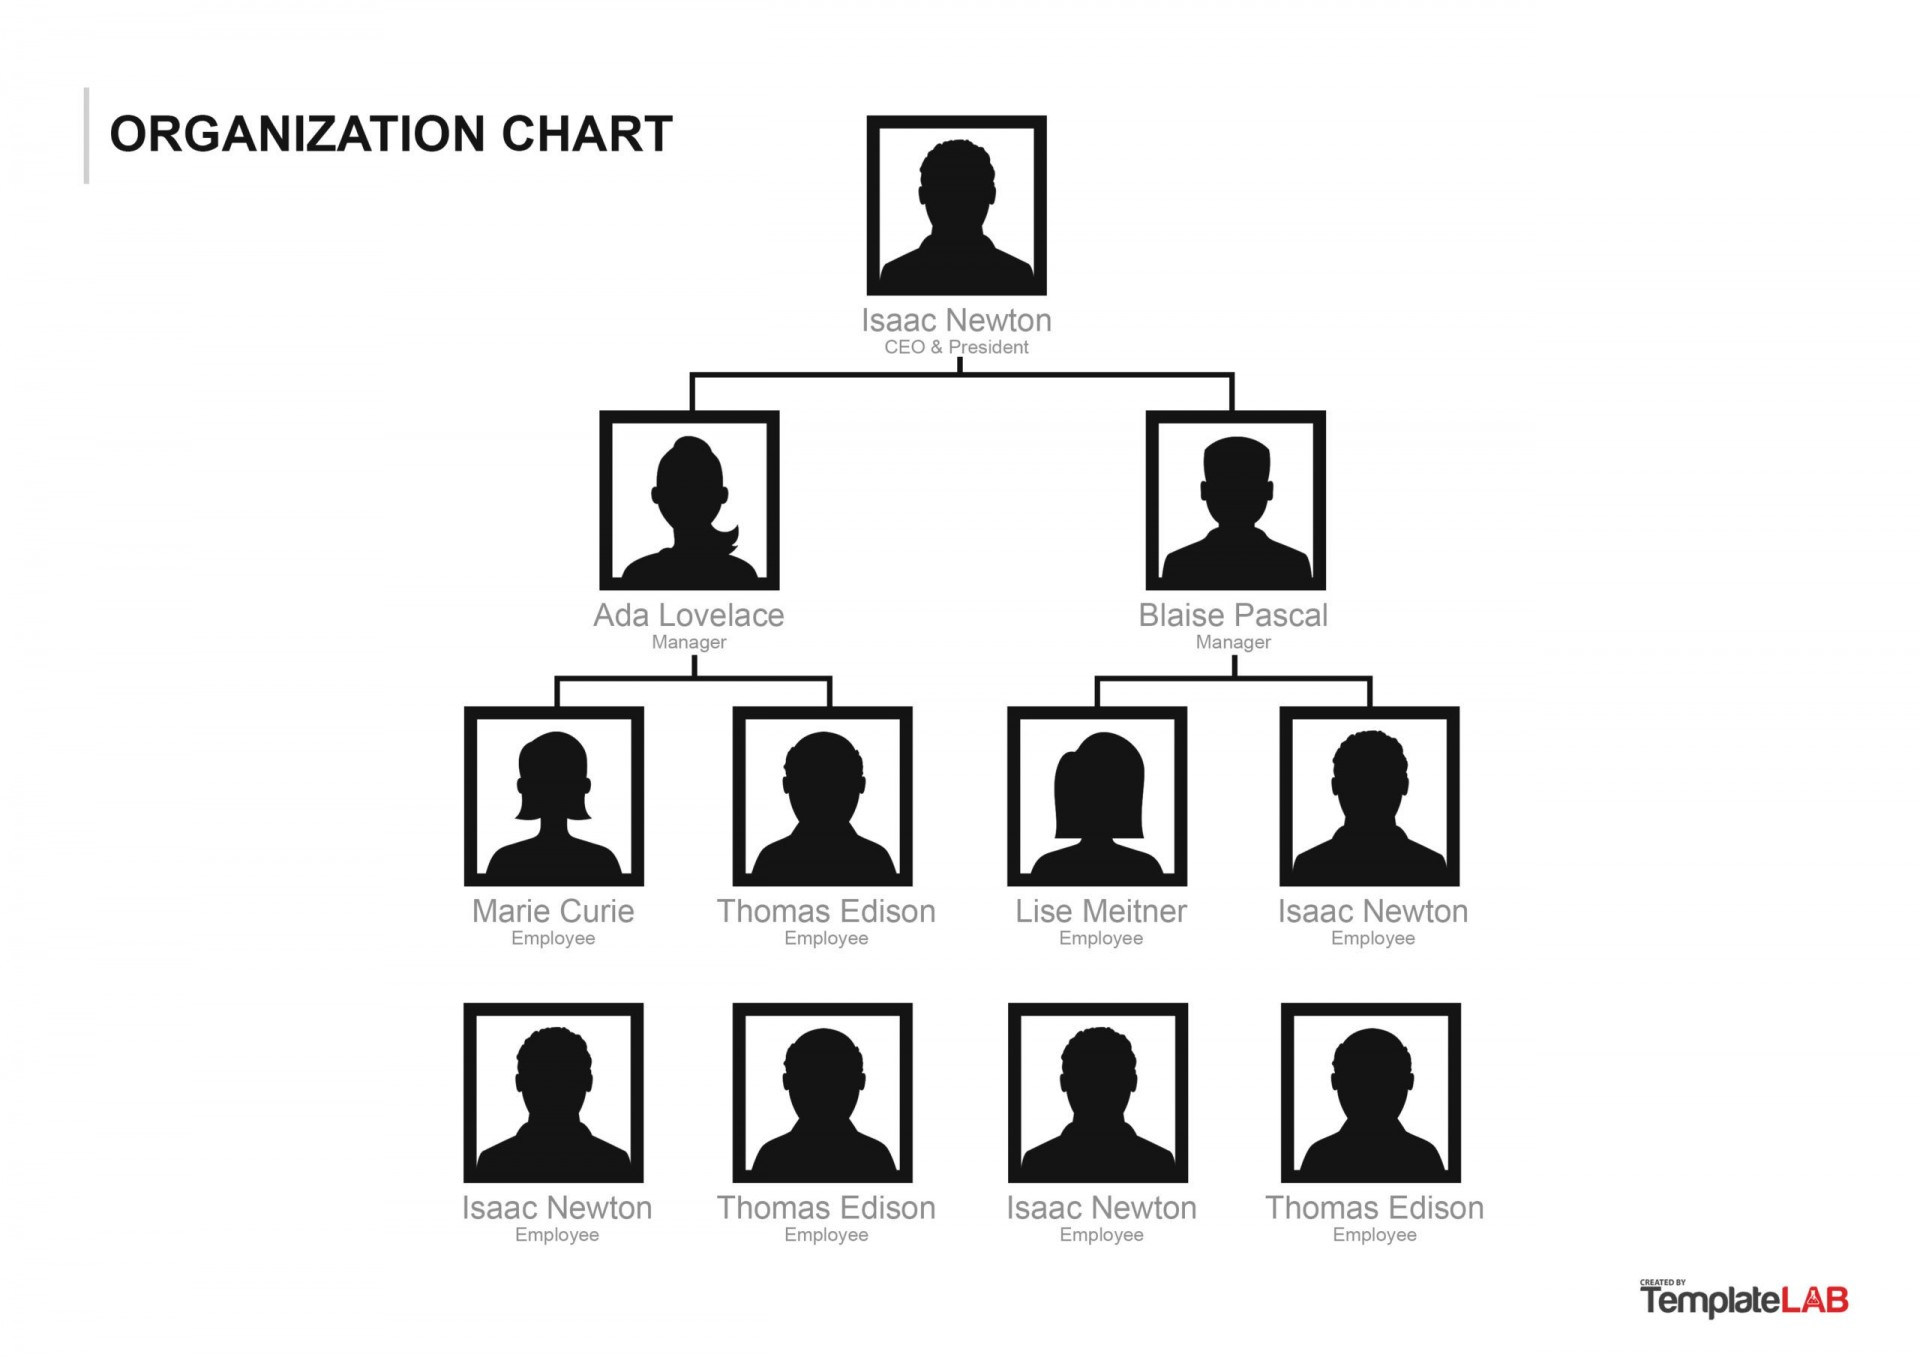 009 Exceptional Org Chart Template Microsoft Word 2010 Highest Clarity 1920